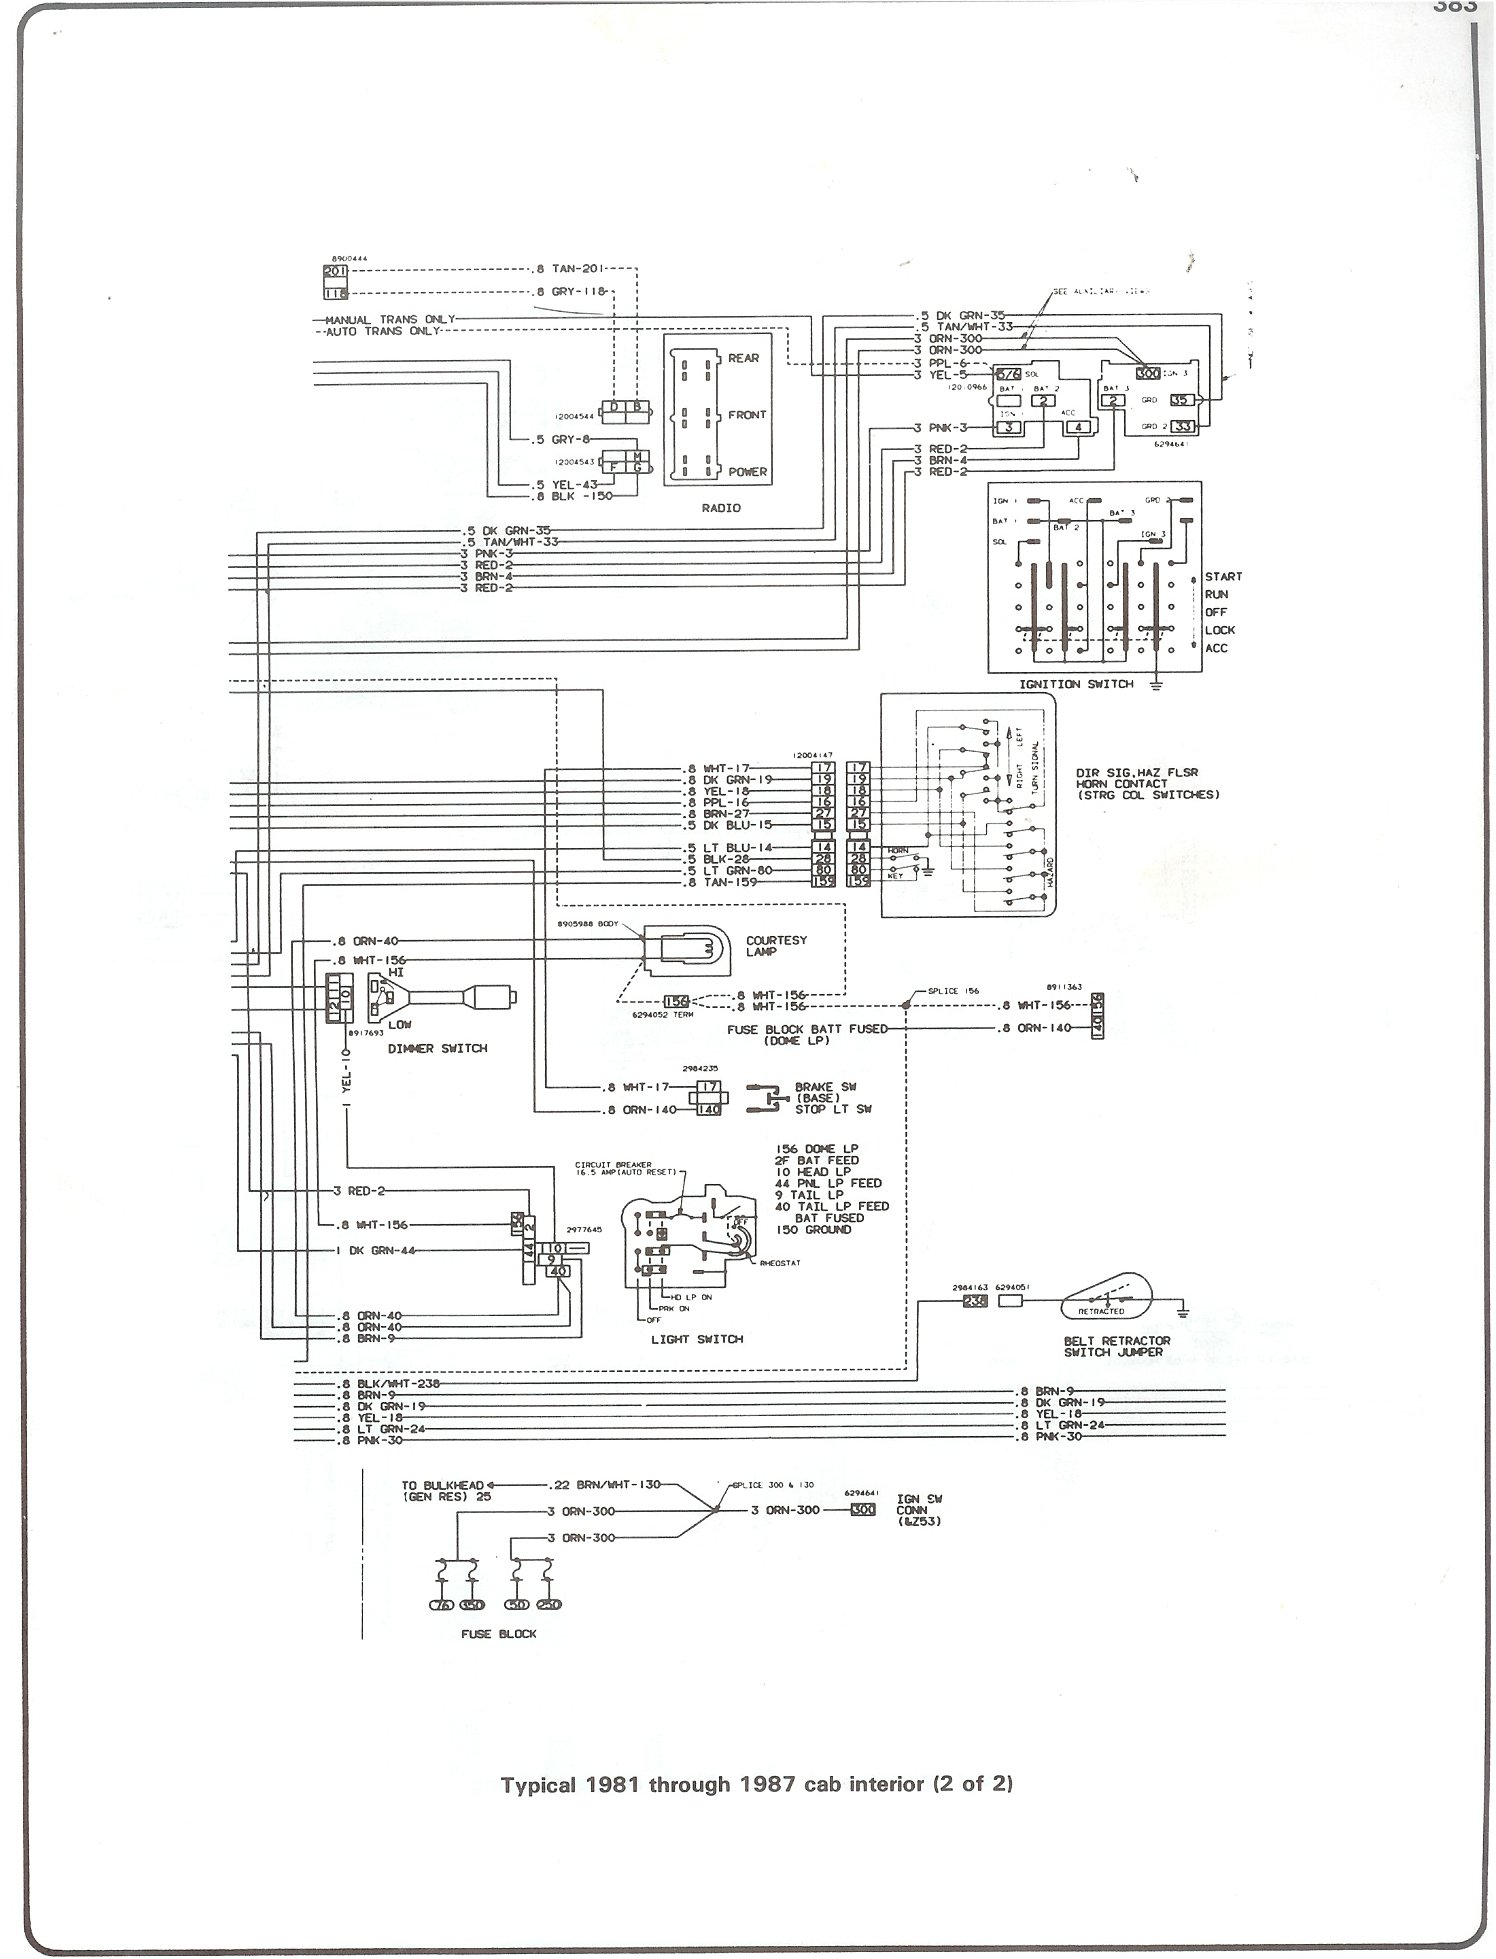 81 87_cab_inter_pg2 79 chevy truck wiring diagram 82 chevy truck wiring diagram 1996 chevy s10 steering column wiring diagram at gsmx.co